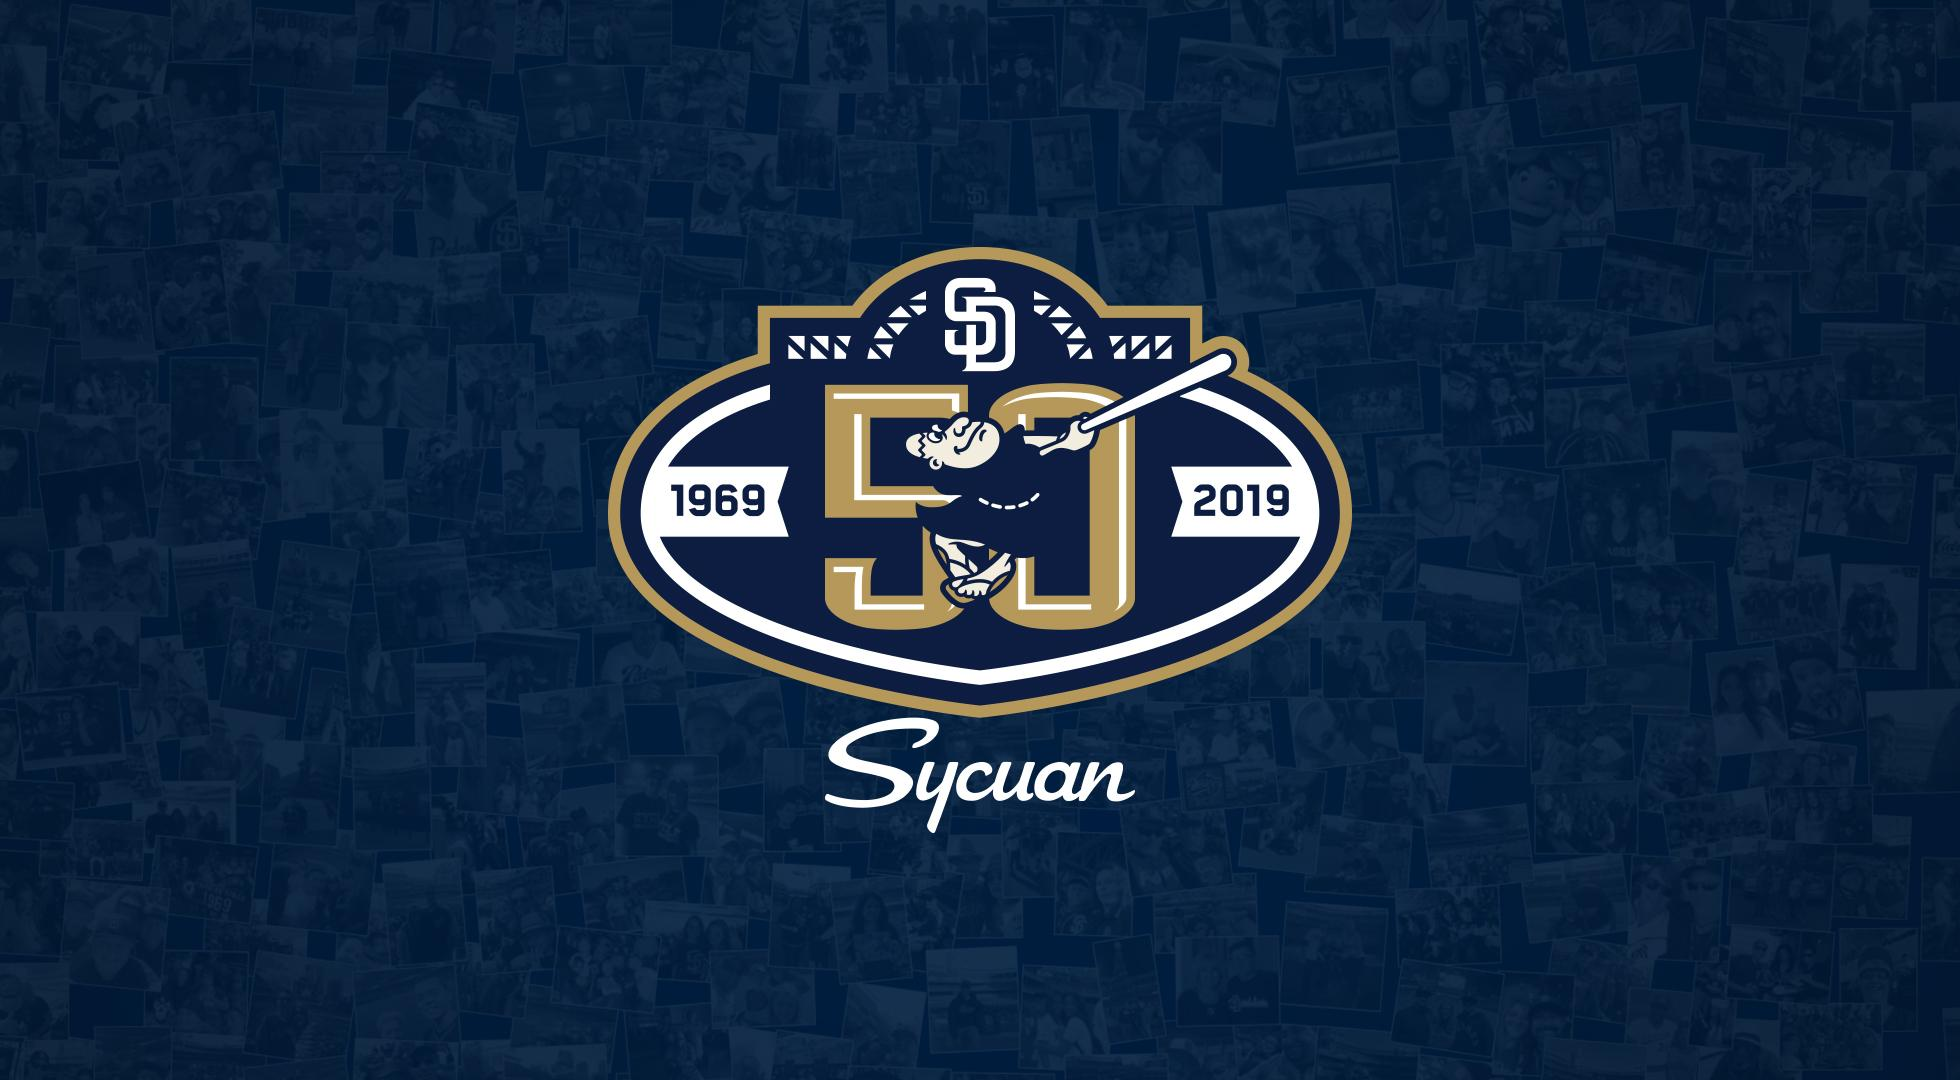 San Diego Padres 2019 Wallpapers Wallpaper Cave